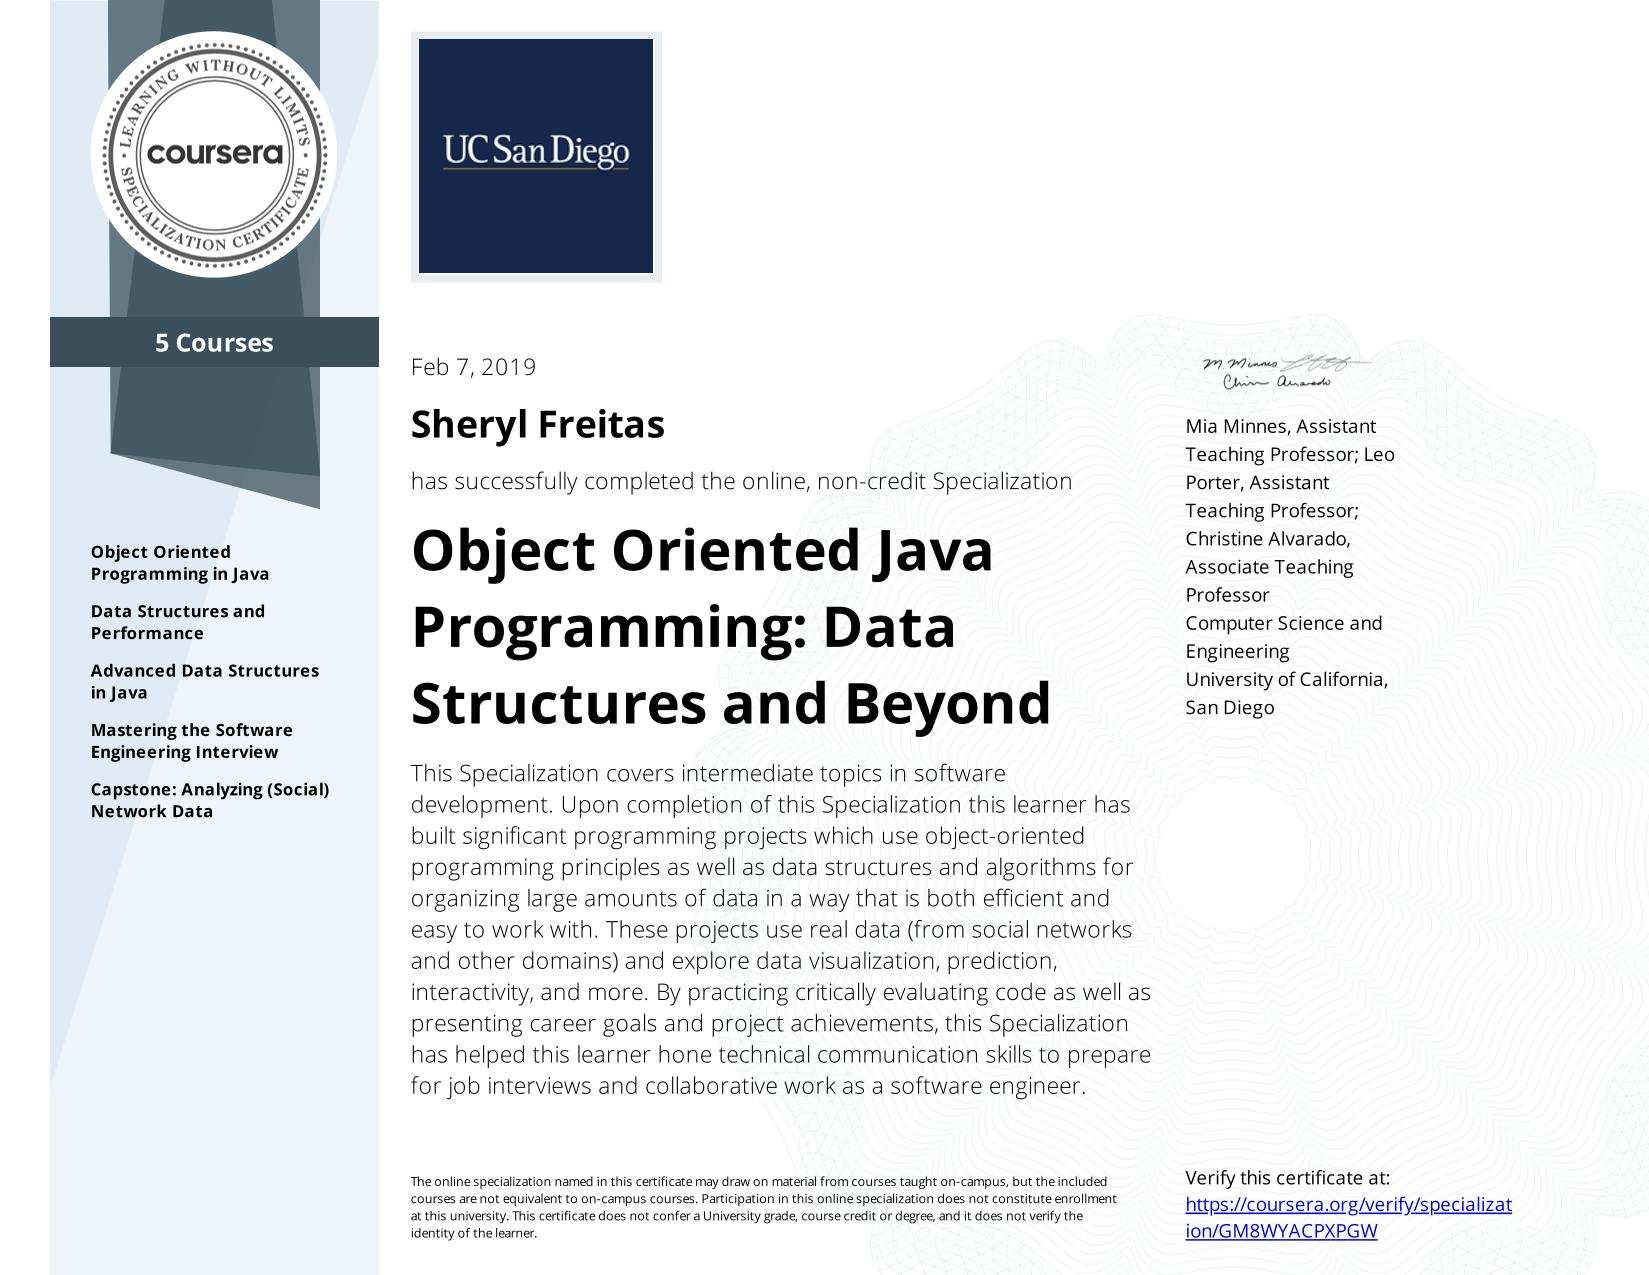 View certificate for Sheryl Freitas, Object Oriented Java Programming: Data Structures and Beyond, offered through Coursera. This Specialization covers intermediate topics in software development. Upon completion of this Specialization this learner has built significant programming projects which use object-oriented programming principles as well as data structures and algorithms for organizing large amounts of data in a way that is both efficient and easy to work with.  These projects use real data (from social networks and other domains) and explore data visualization, prediction, interactivity, and more. By practicing critically evaluating code as well as presenting career goals and project achievements, this Specialization has helped this learner hone technical communication skills to prepare for job interviews and collaborative work as a software engineer.